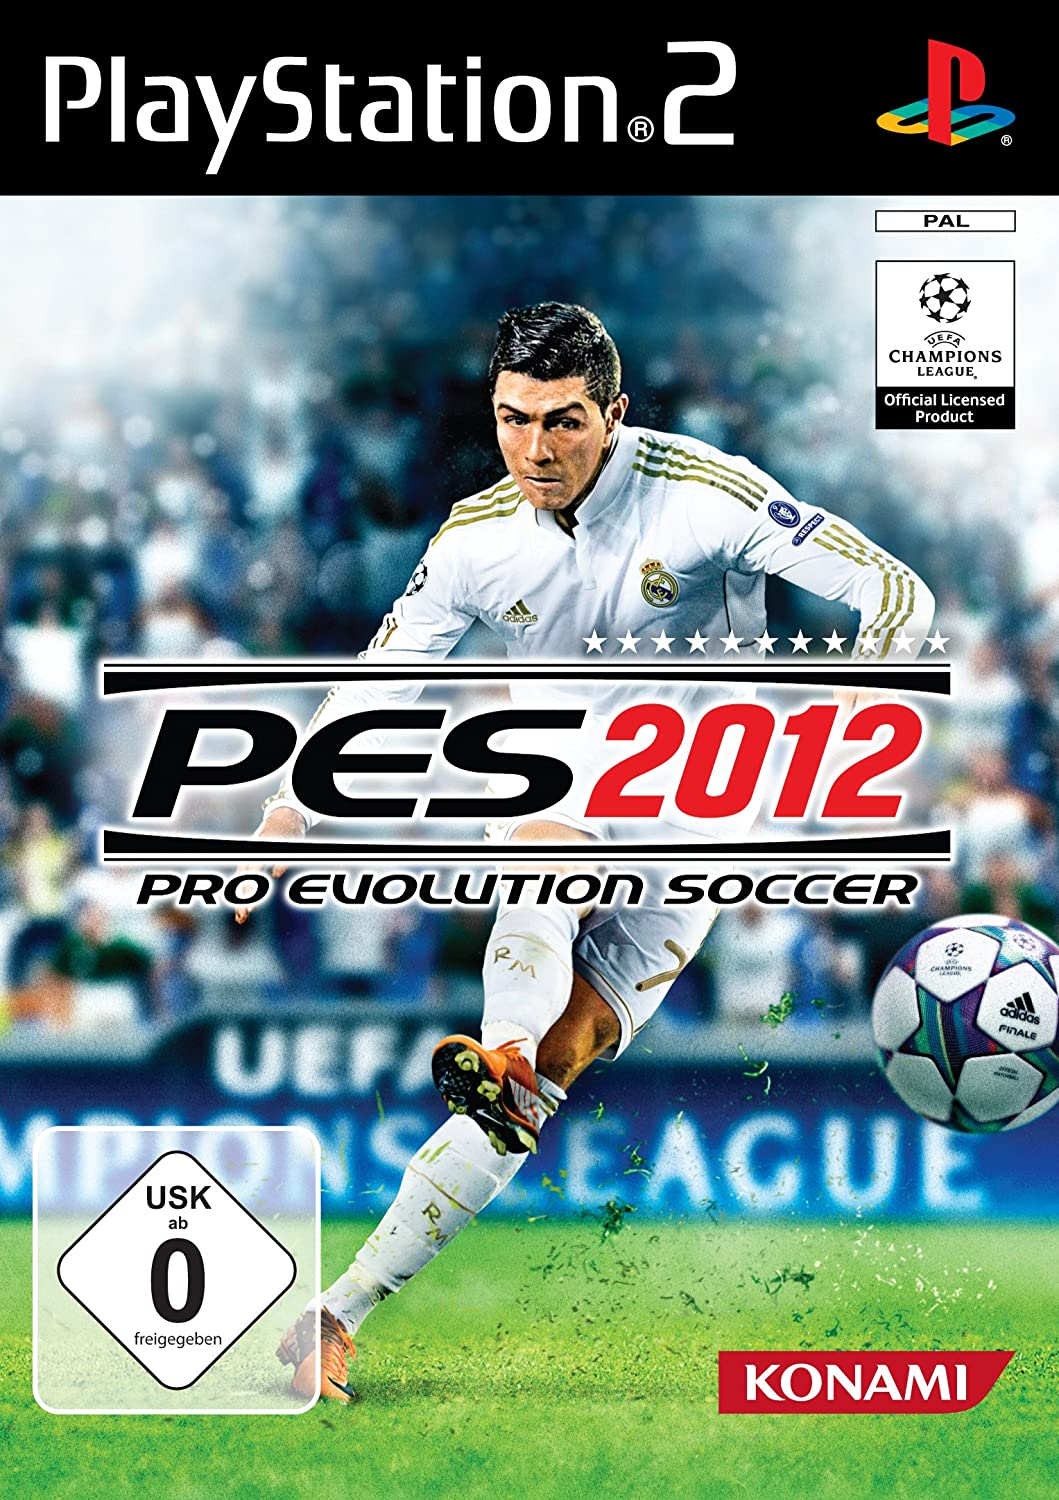 Konami Pro Evolution Soccer 2012, DEU, PlayStation 2 - Juego (DEU ...